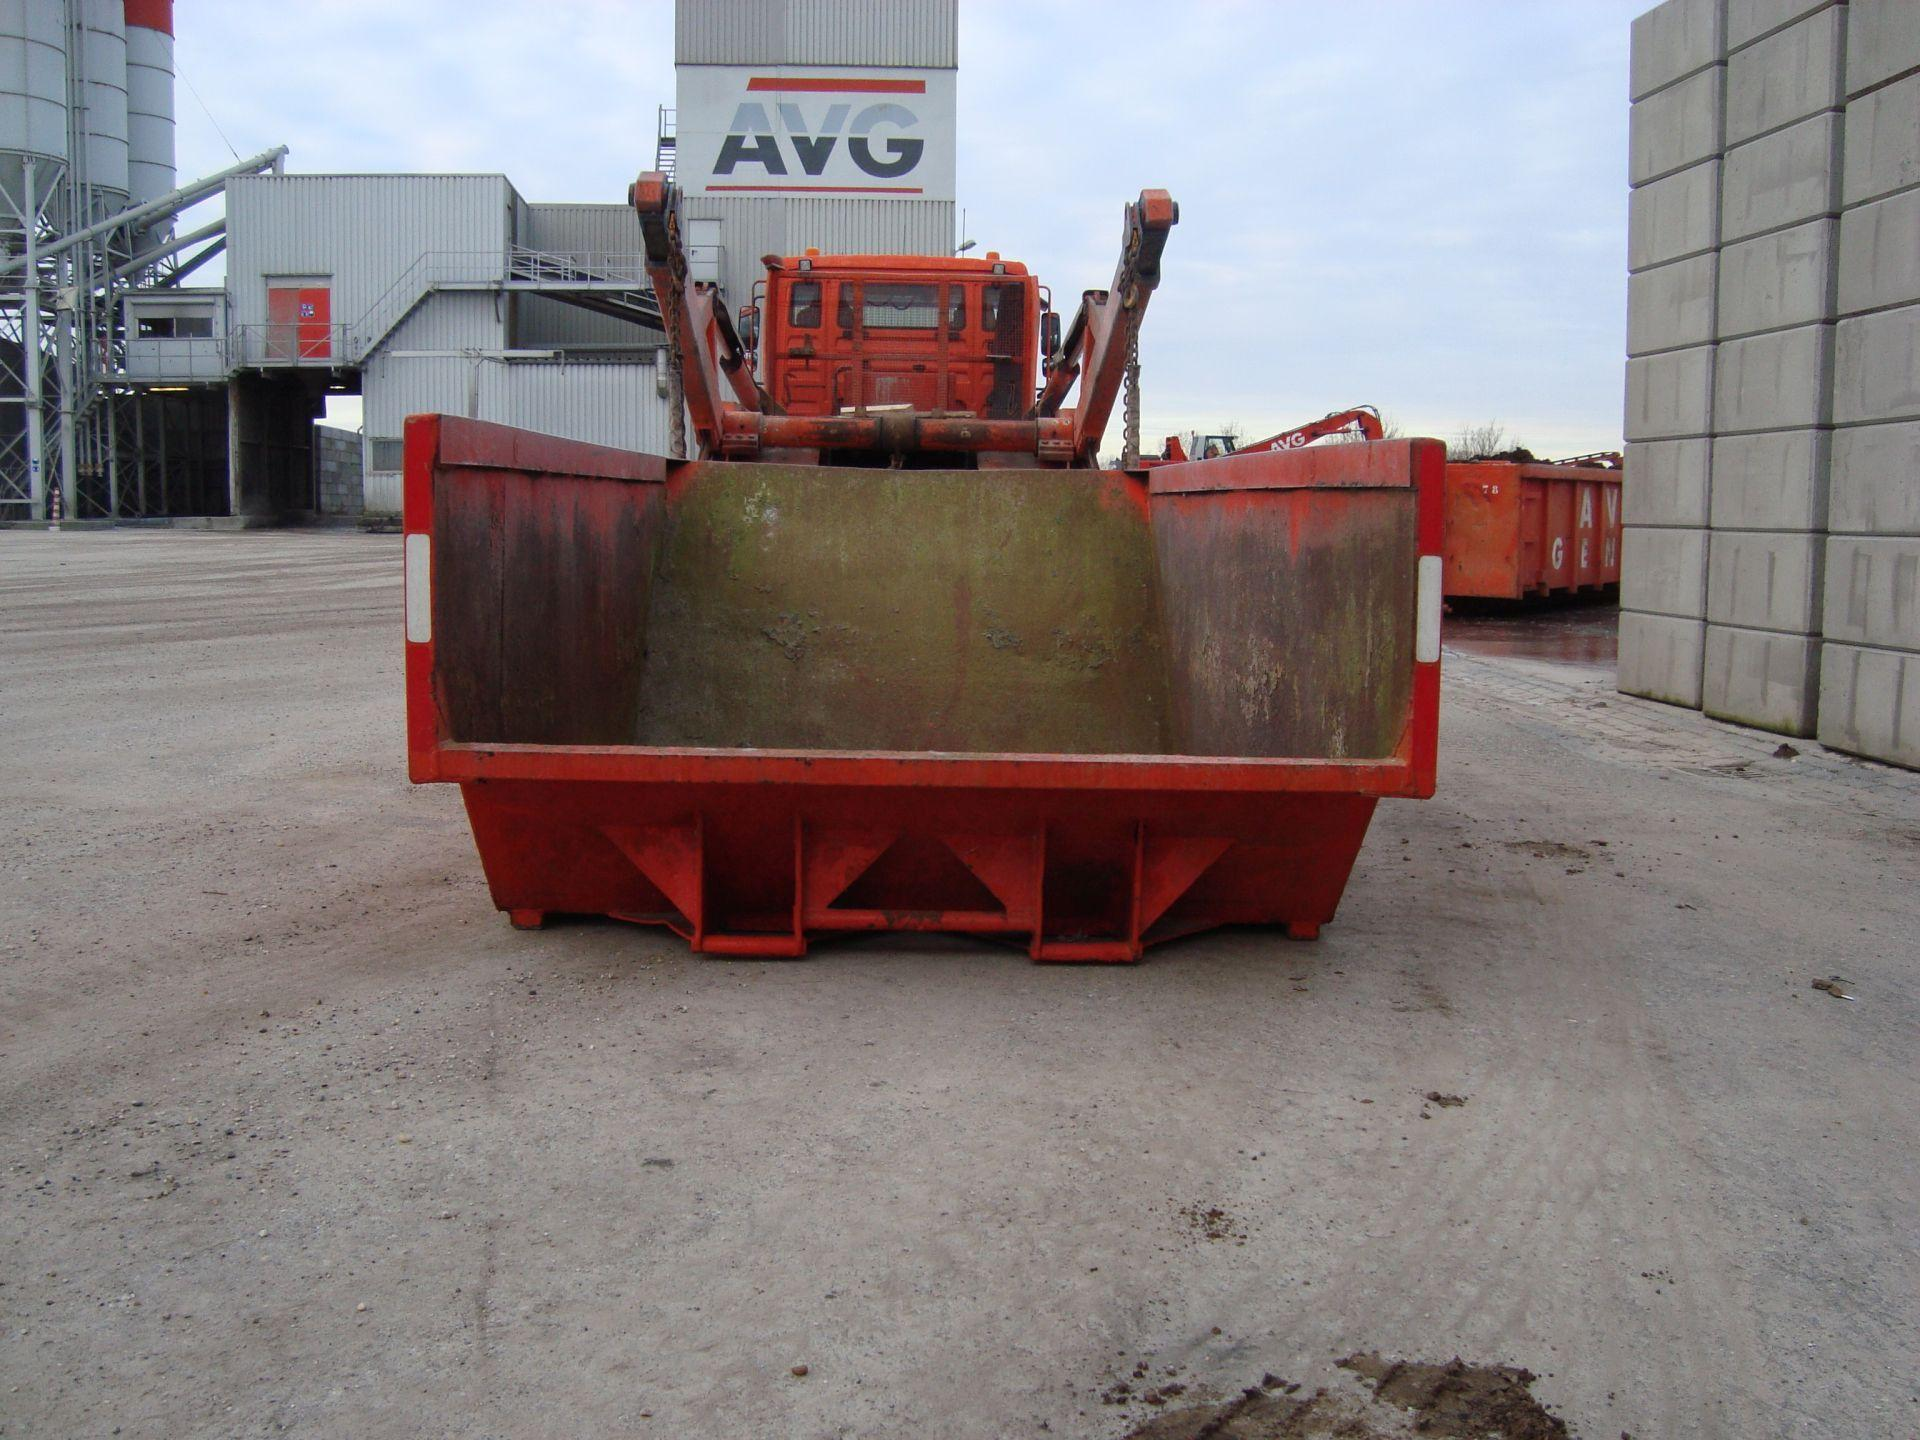 midden-container-1-avg-bouwstoffen